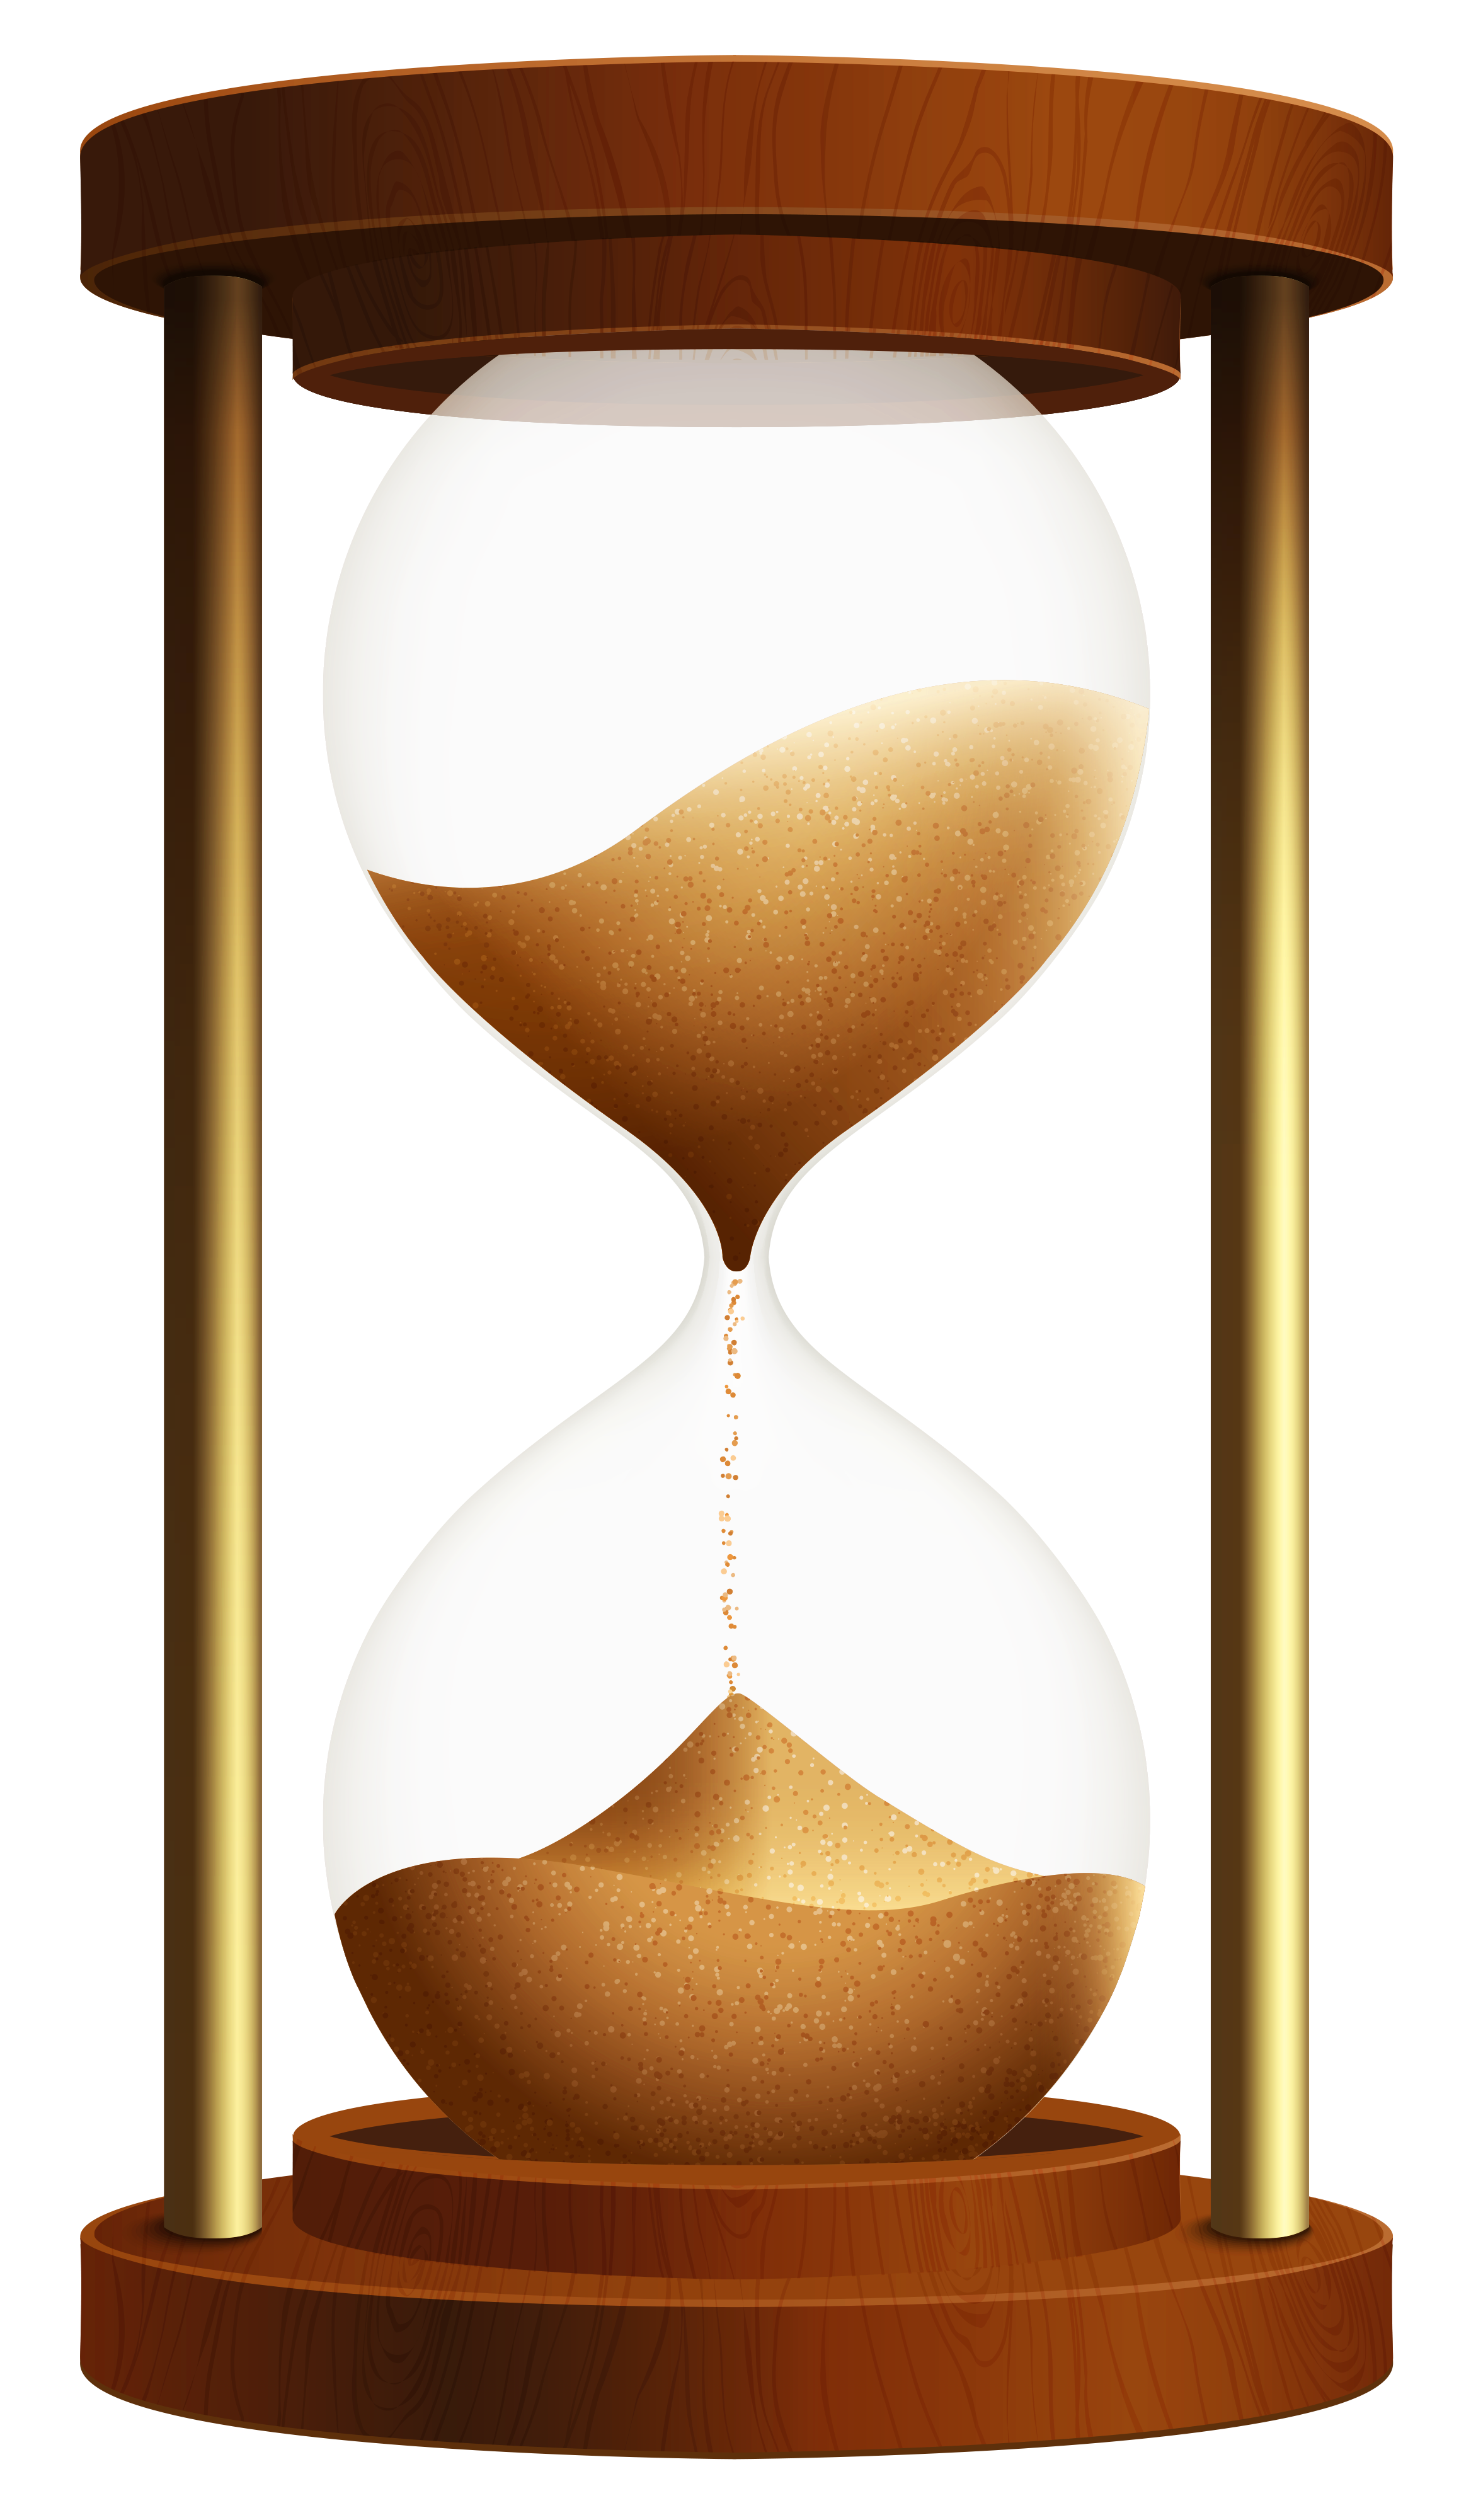 Sand timer clipart picture royalty free download Sand Clock PNG ClipArt - Best WEB Clipart picture royalty free download